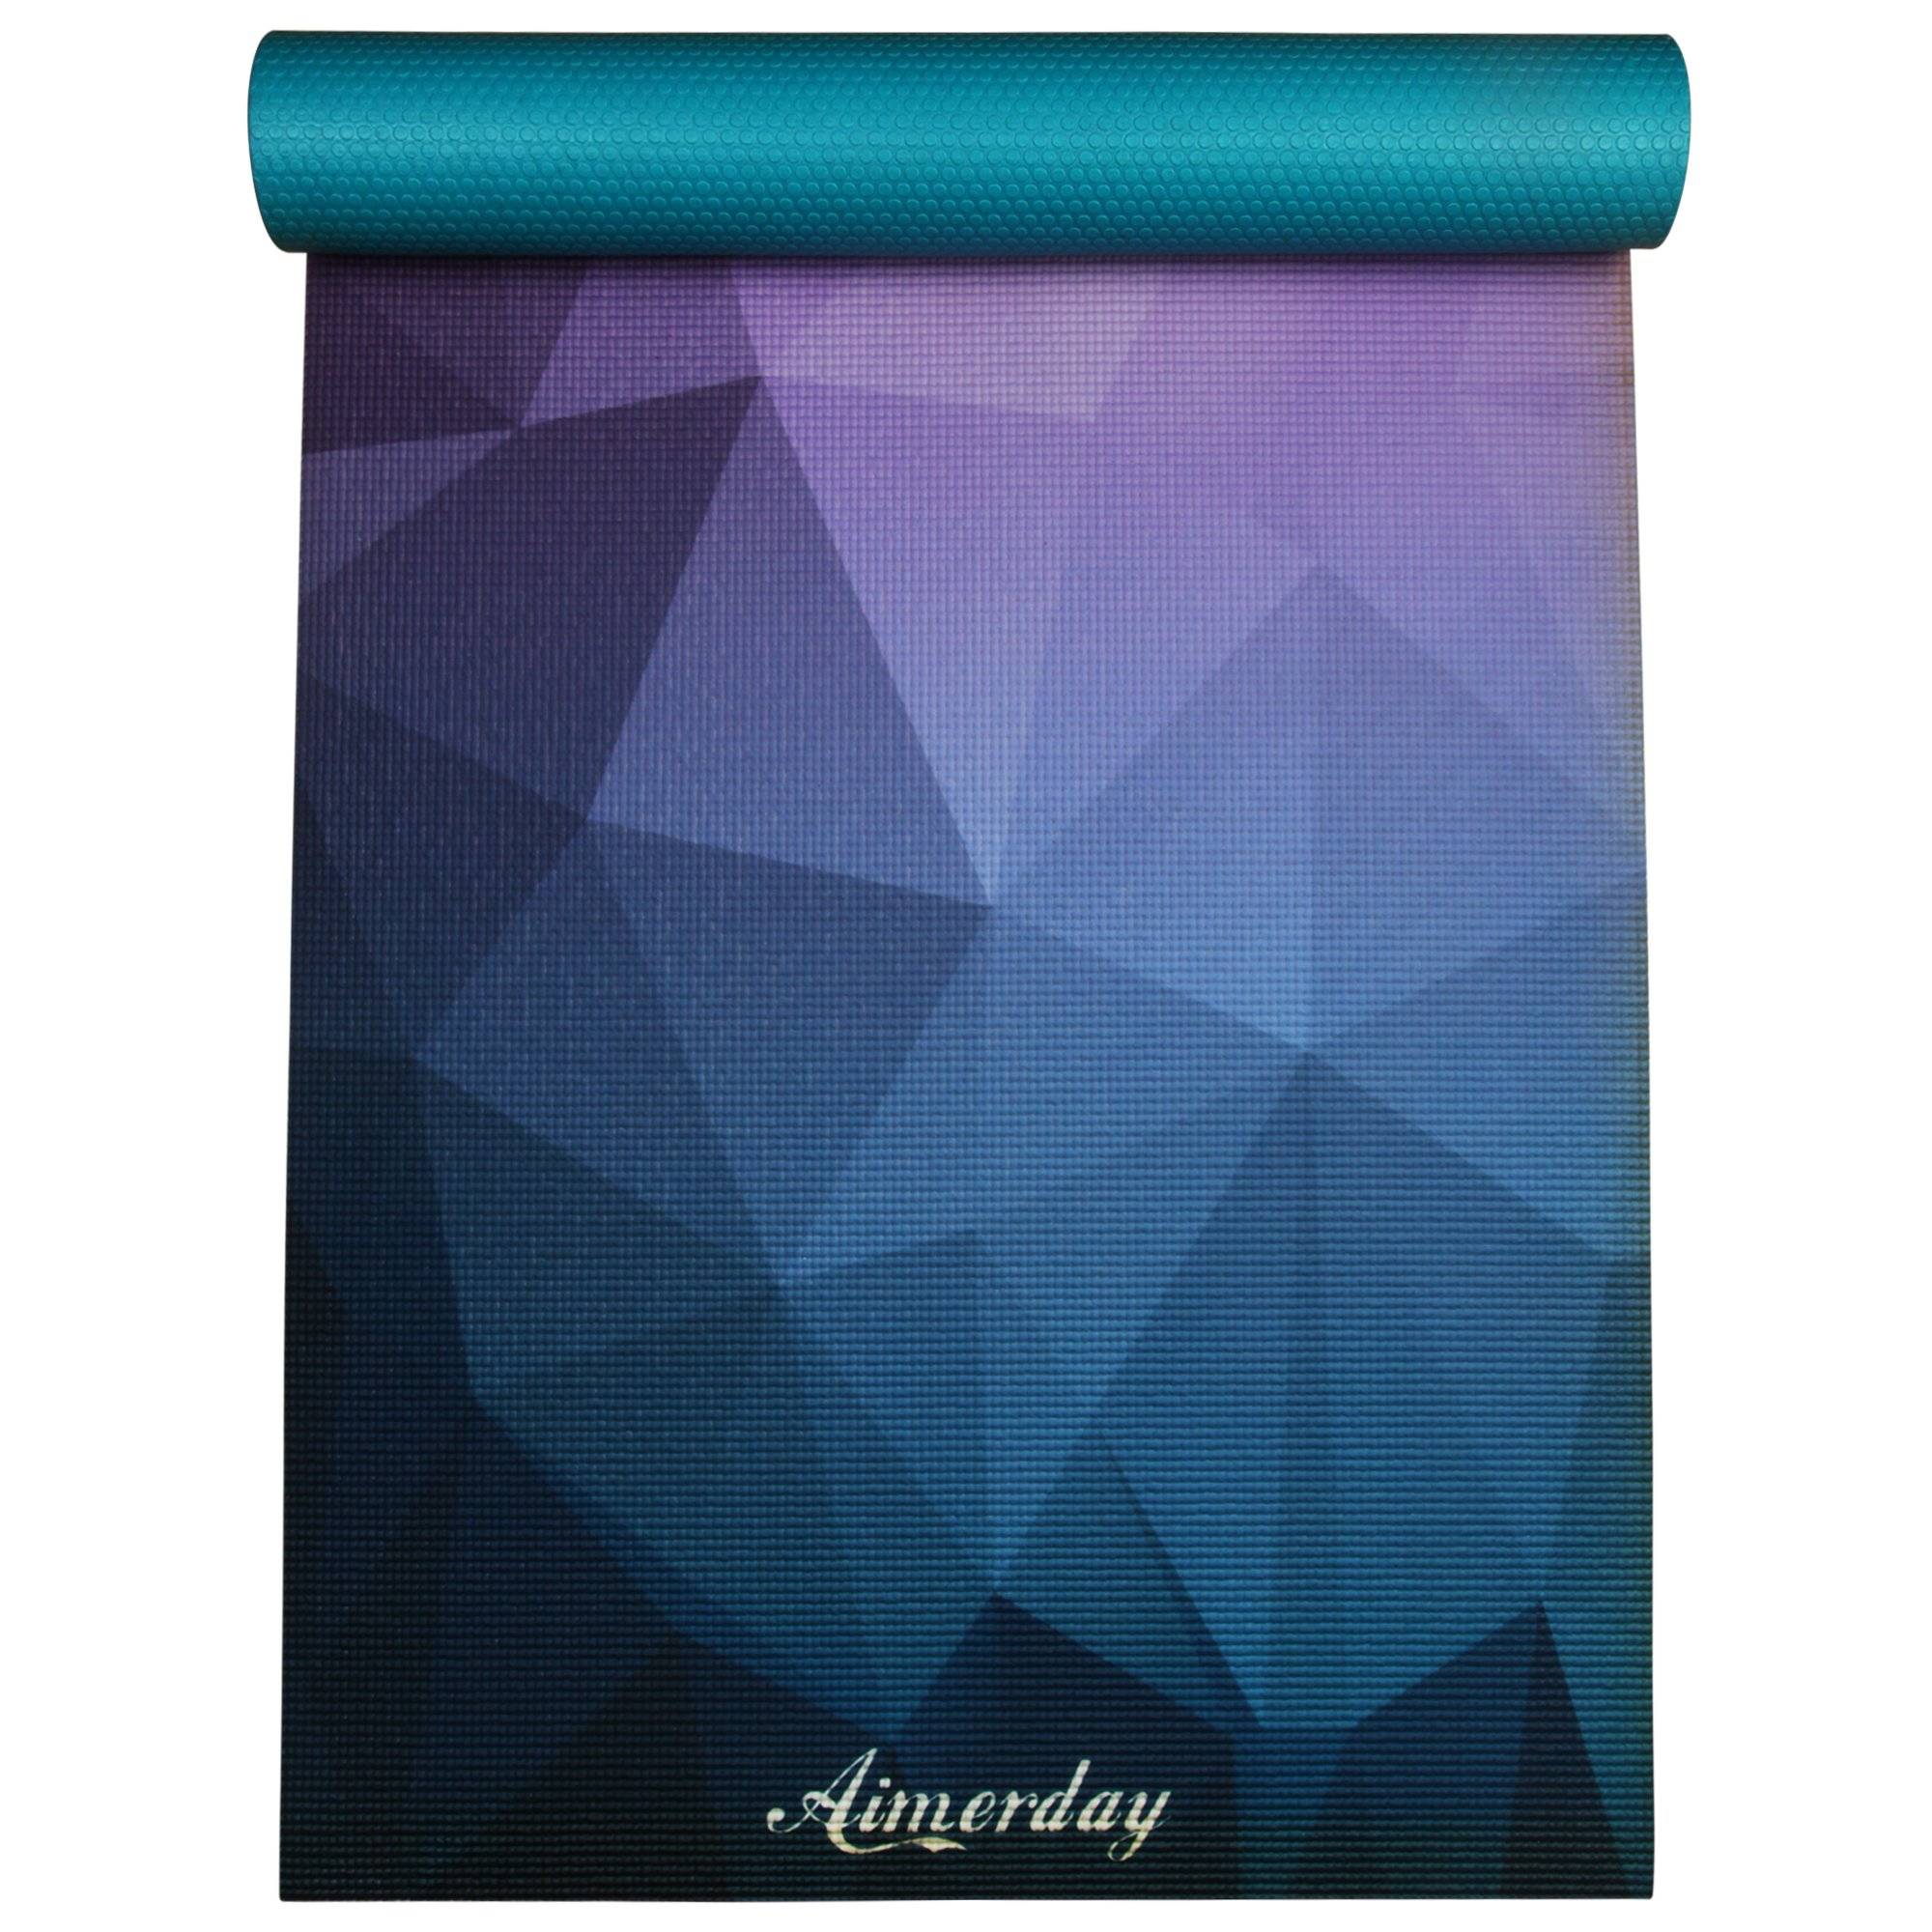 AIMERDAY Premium Printed 1/4'' Extra Thick Yoga Mat High Density 72X24 Inch Non Slip Eco-Friendly Anti-Tear Floor Pilates Exercise Mat for Yoga, Workout, Fitness with Carrying Strap & Bag 6mm